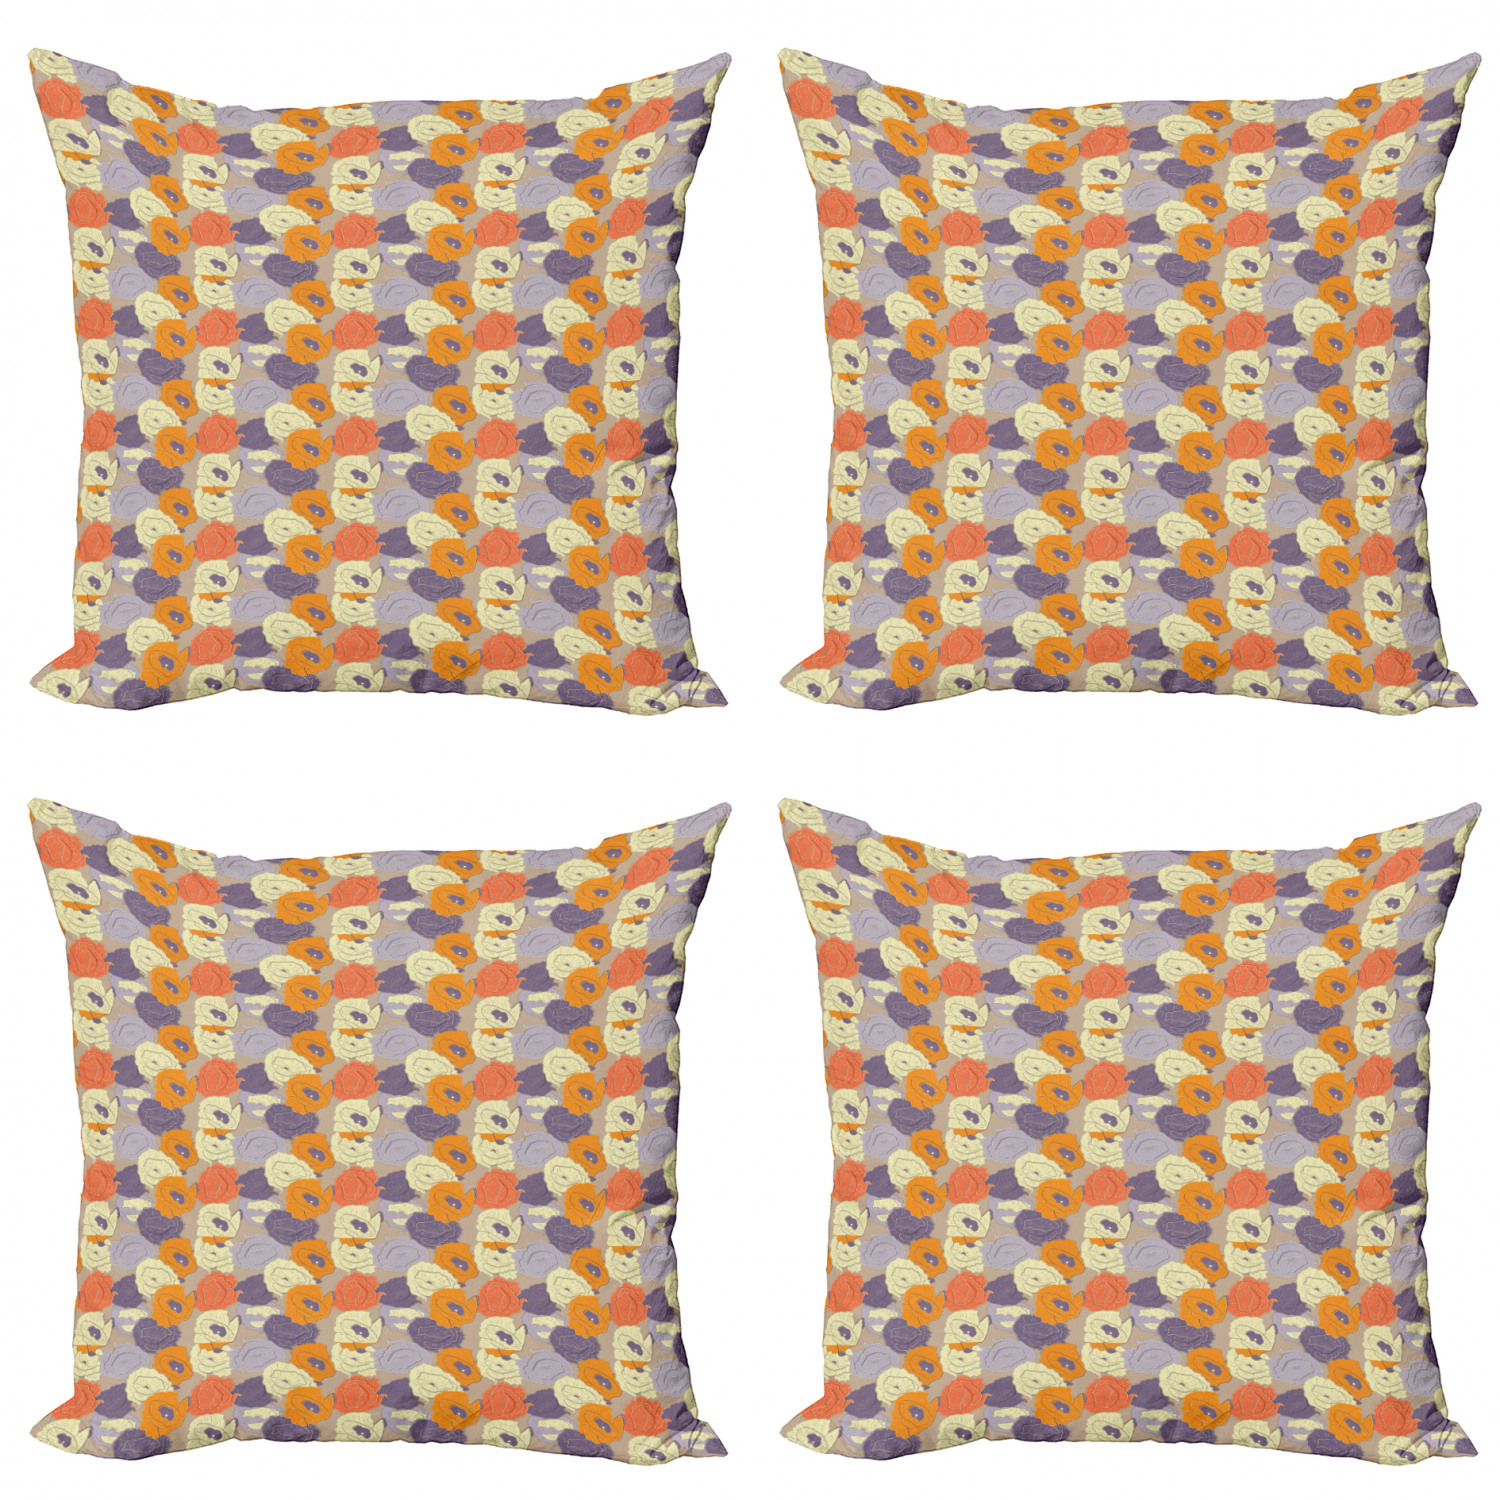 Ambesonne-Floral-Drawings-Cushion-Cover-Set-of-4-for-Couch-and-Bed-in-4-Sizes thumbnail 52